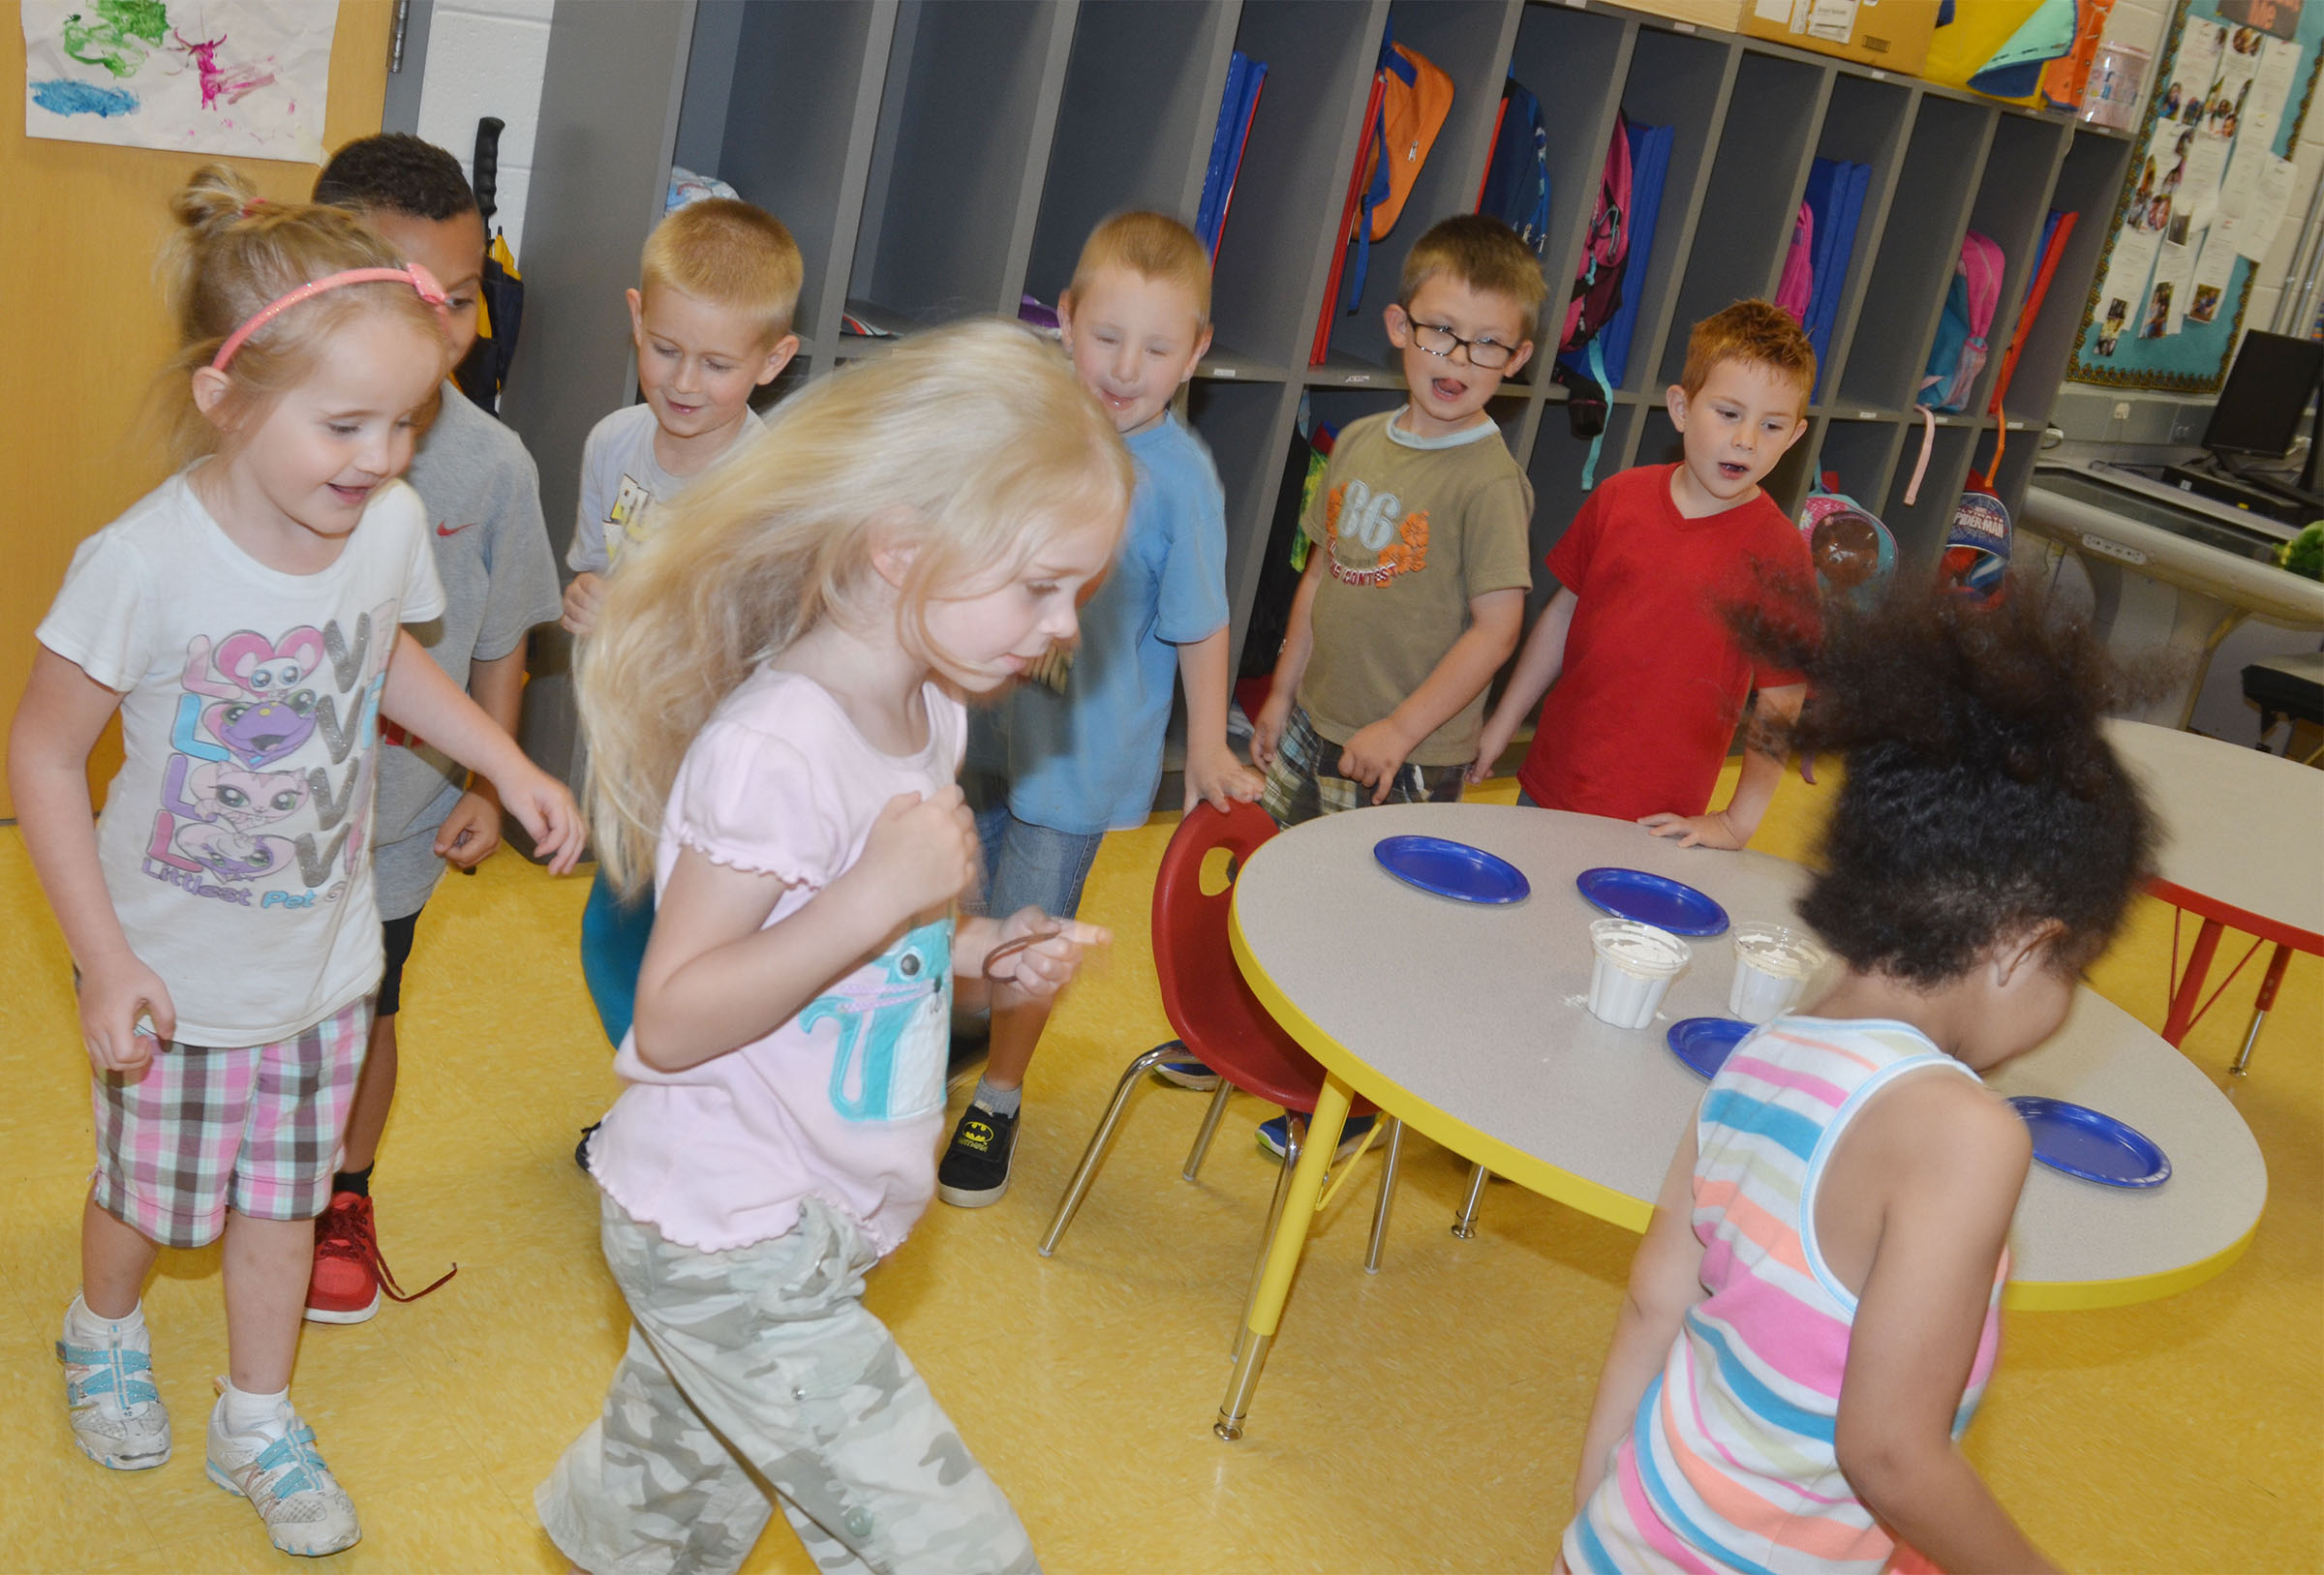 CES preschool students practice walking together as a group.